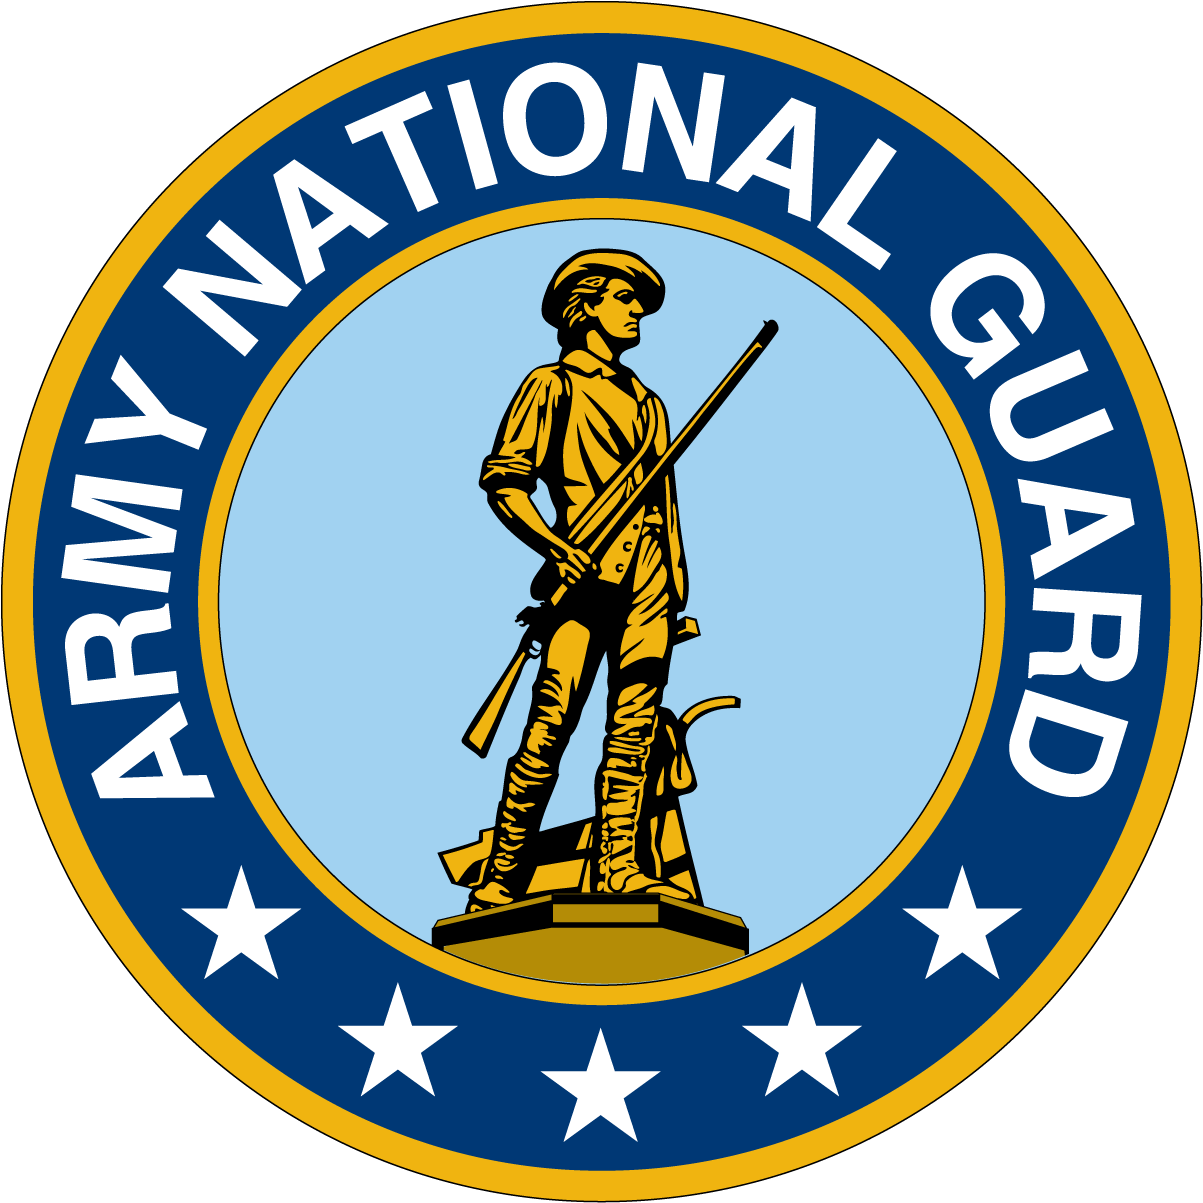 File:Army National Guard logo.png.